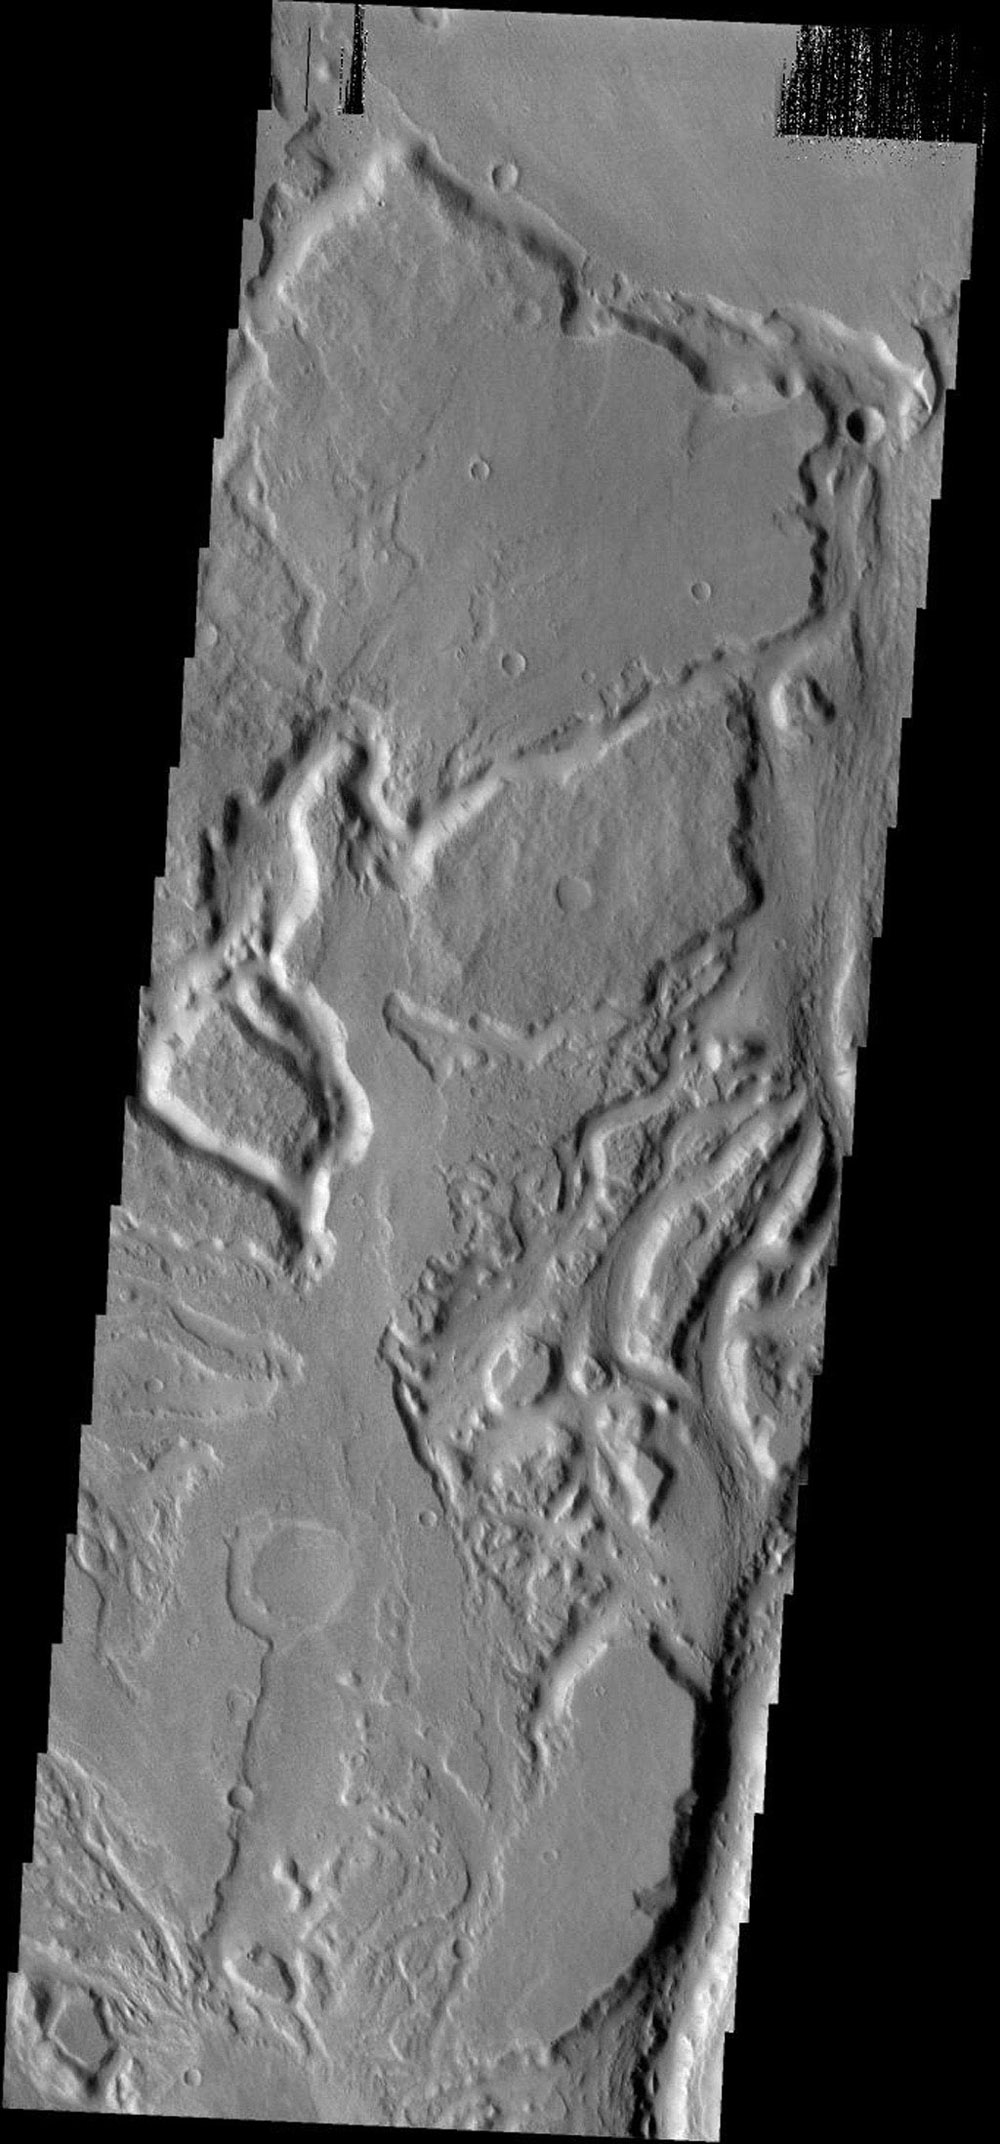 The many small channels in this image are part of the larger Sabis Vallis on Mars as seen by NASA's 2001 Mars Odyssey spacecraft.